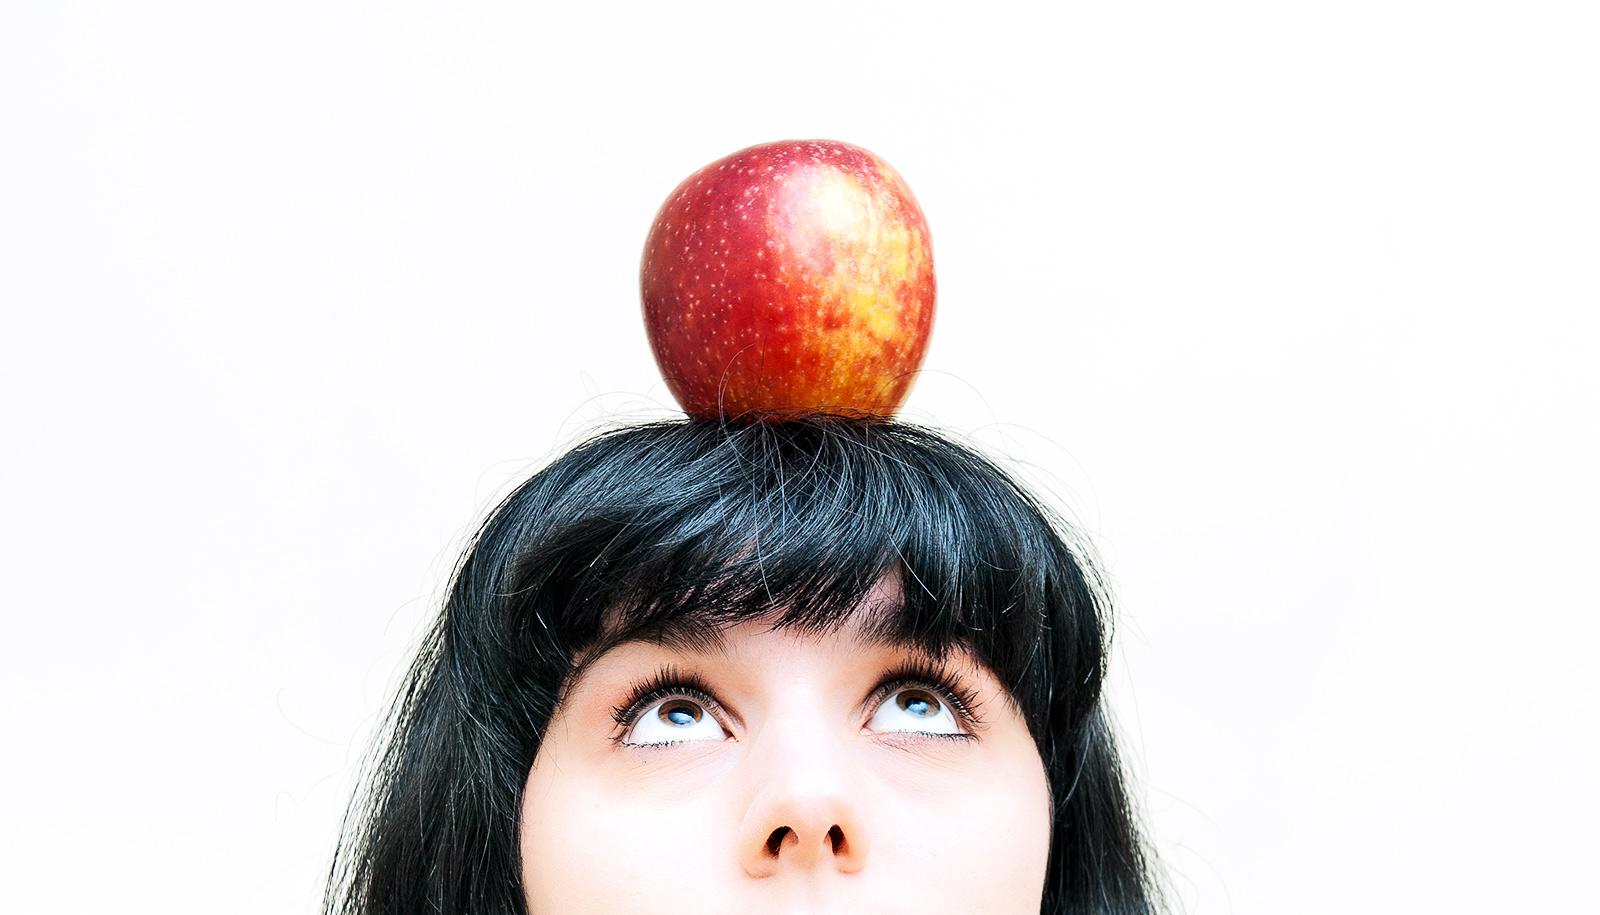 apple on head (genetically modified foods concept)